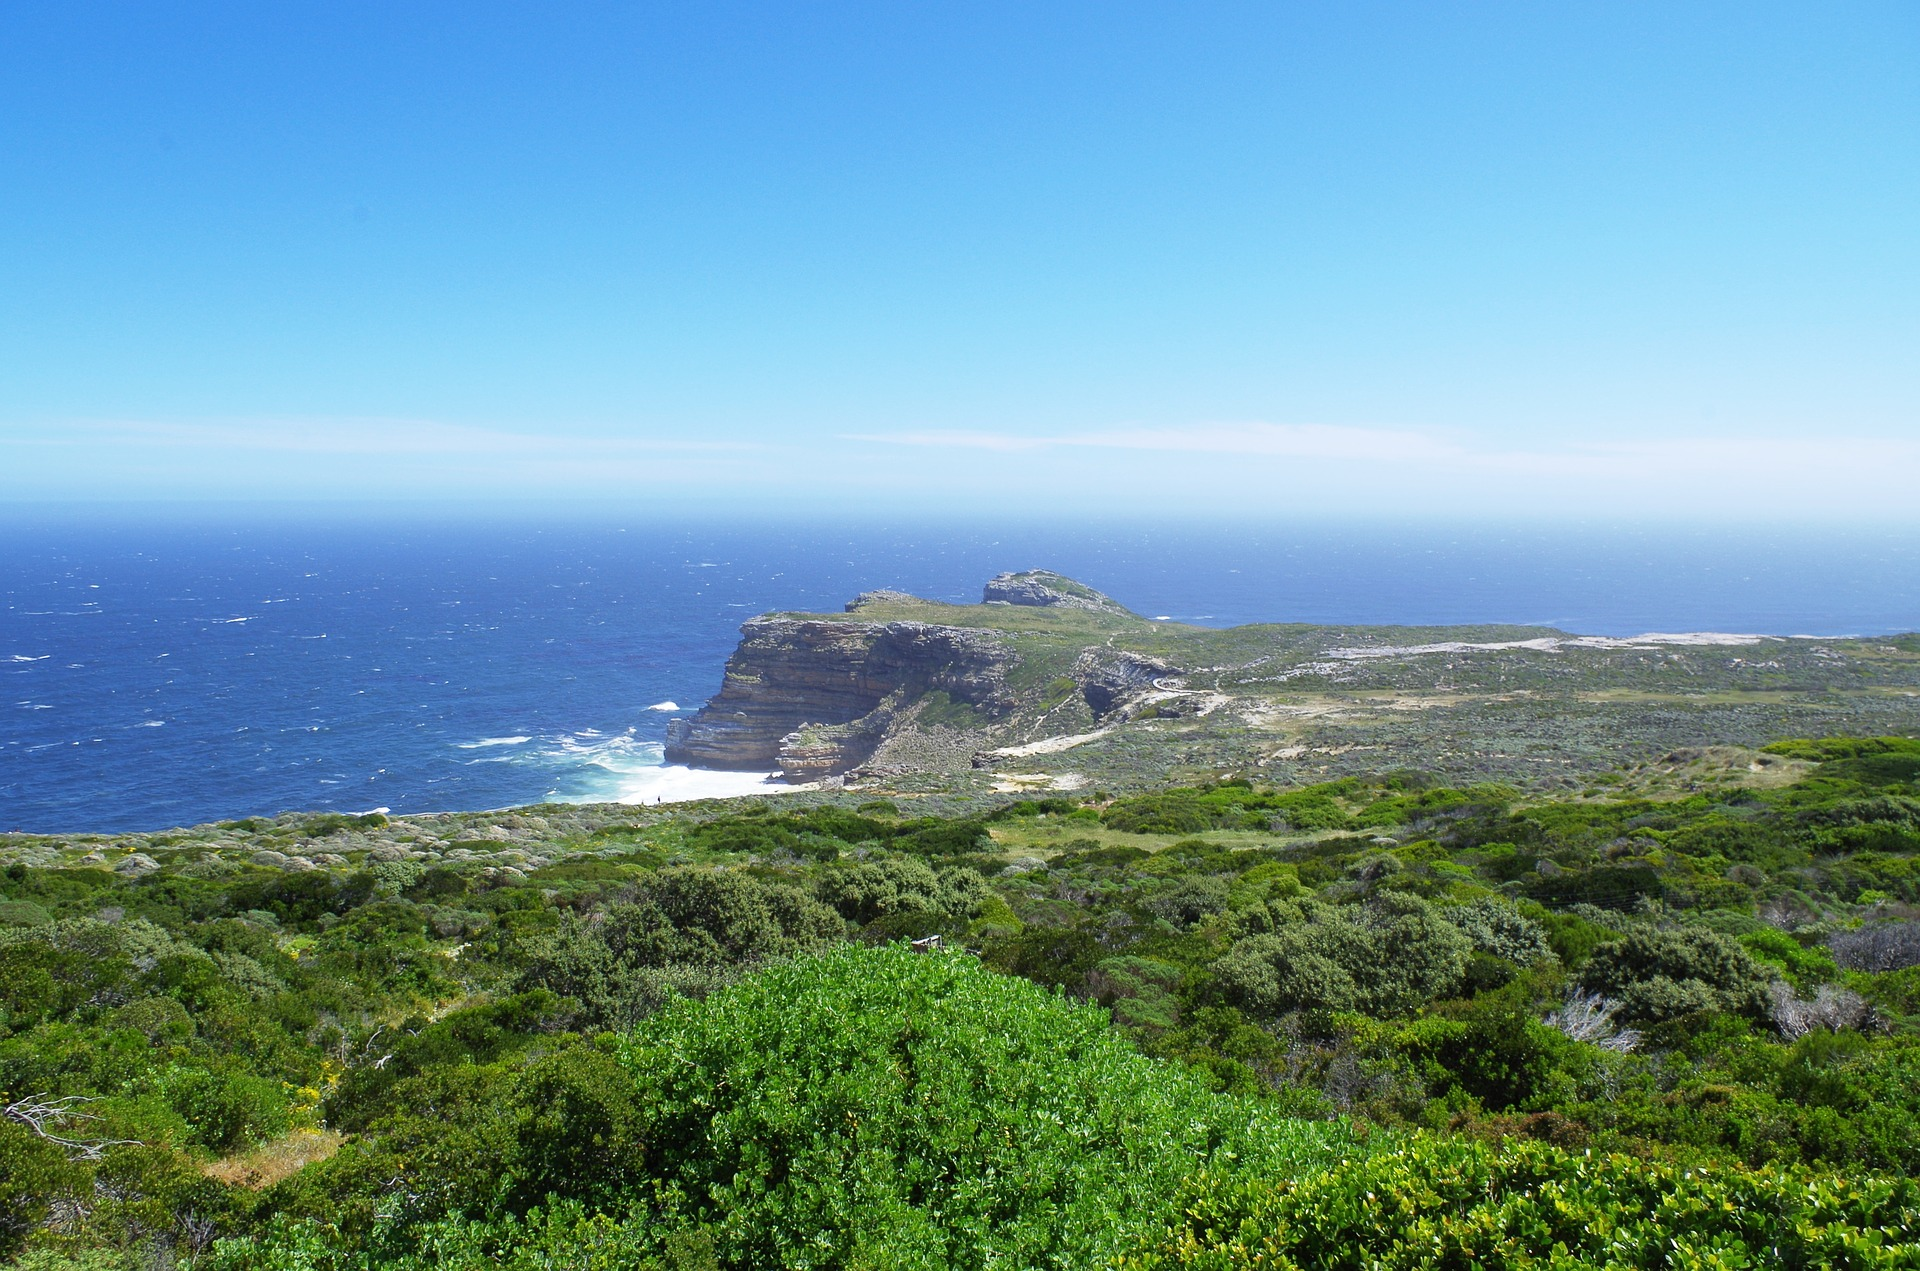 south-africa-2227792_1920